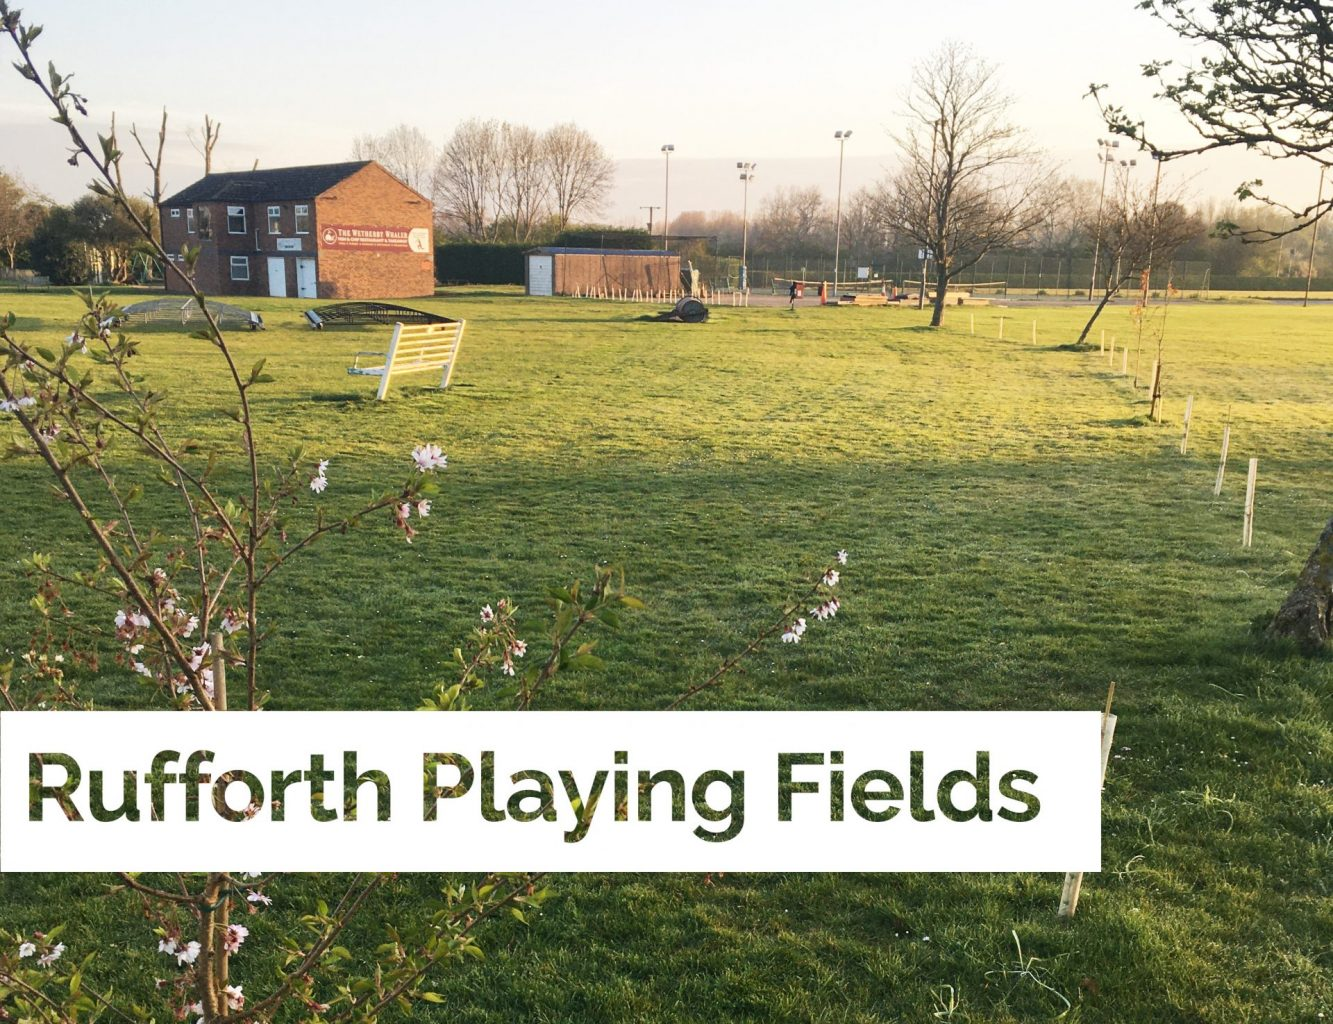 Helping to rejuvenate local playing fields and Caravan site